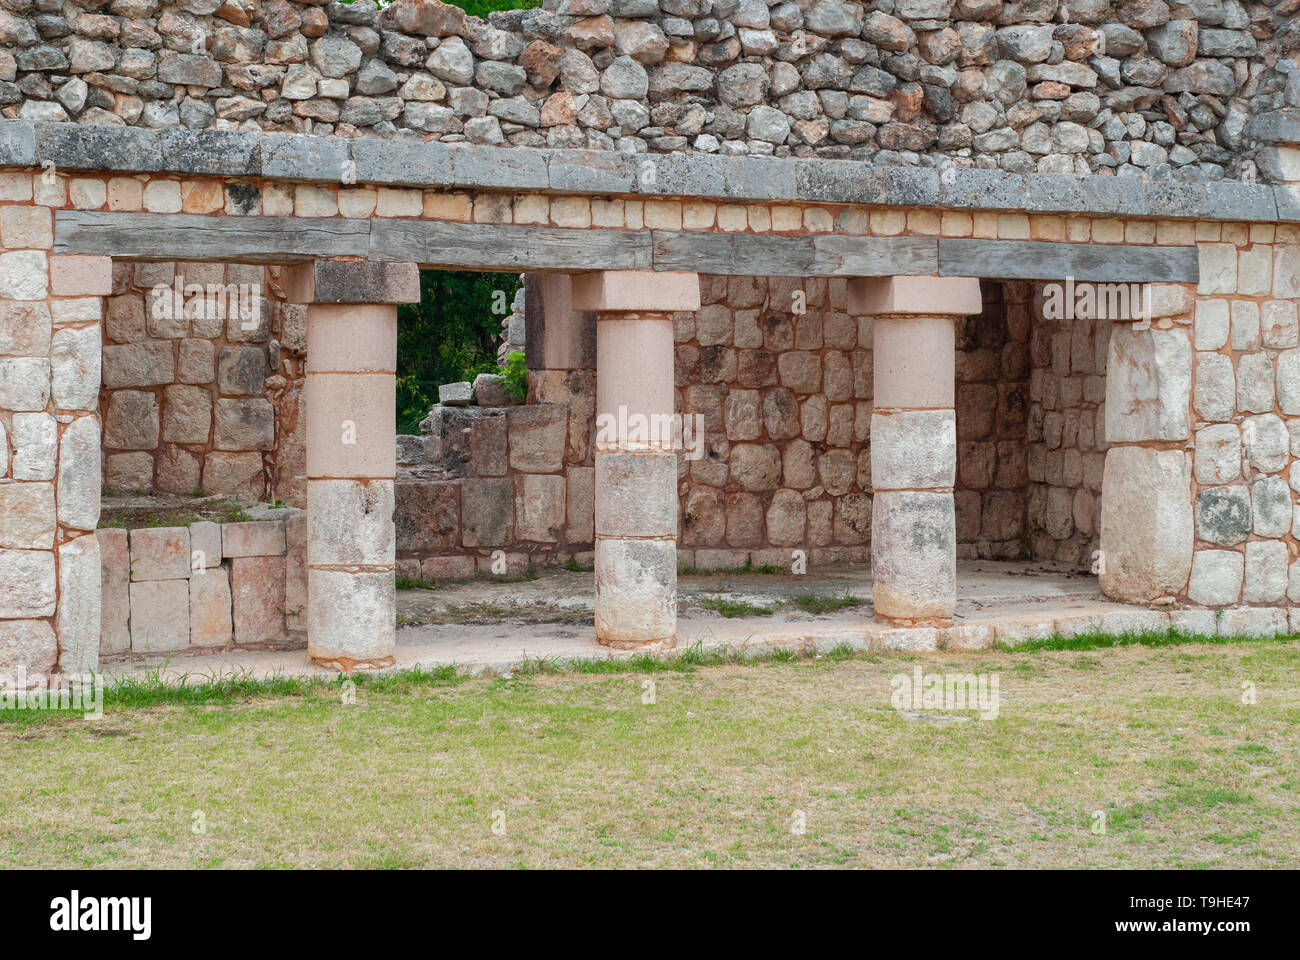 Row of Mayan architectural pillars, in the archaeological area of Ek Balam, on the Yucatan peninsula - Stock Image